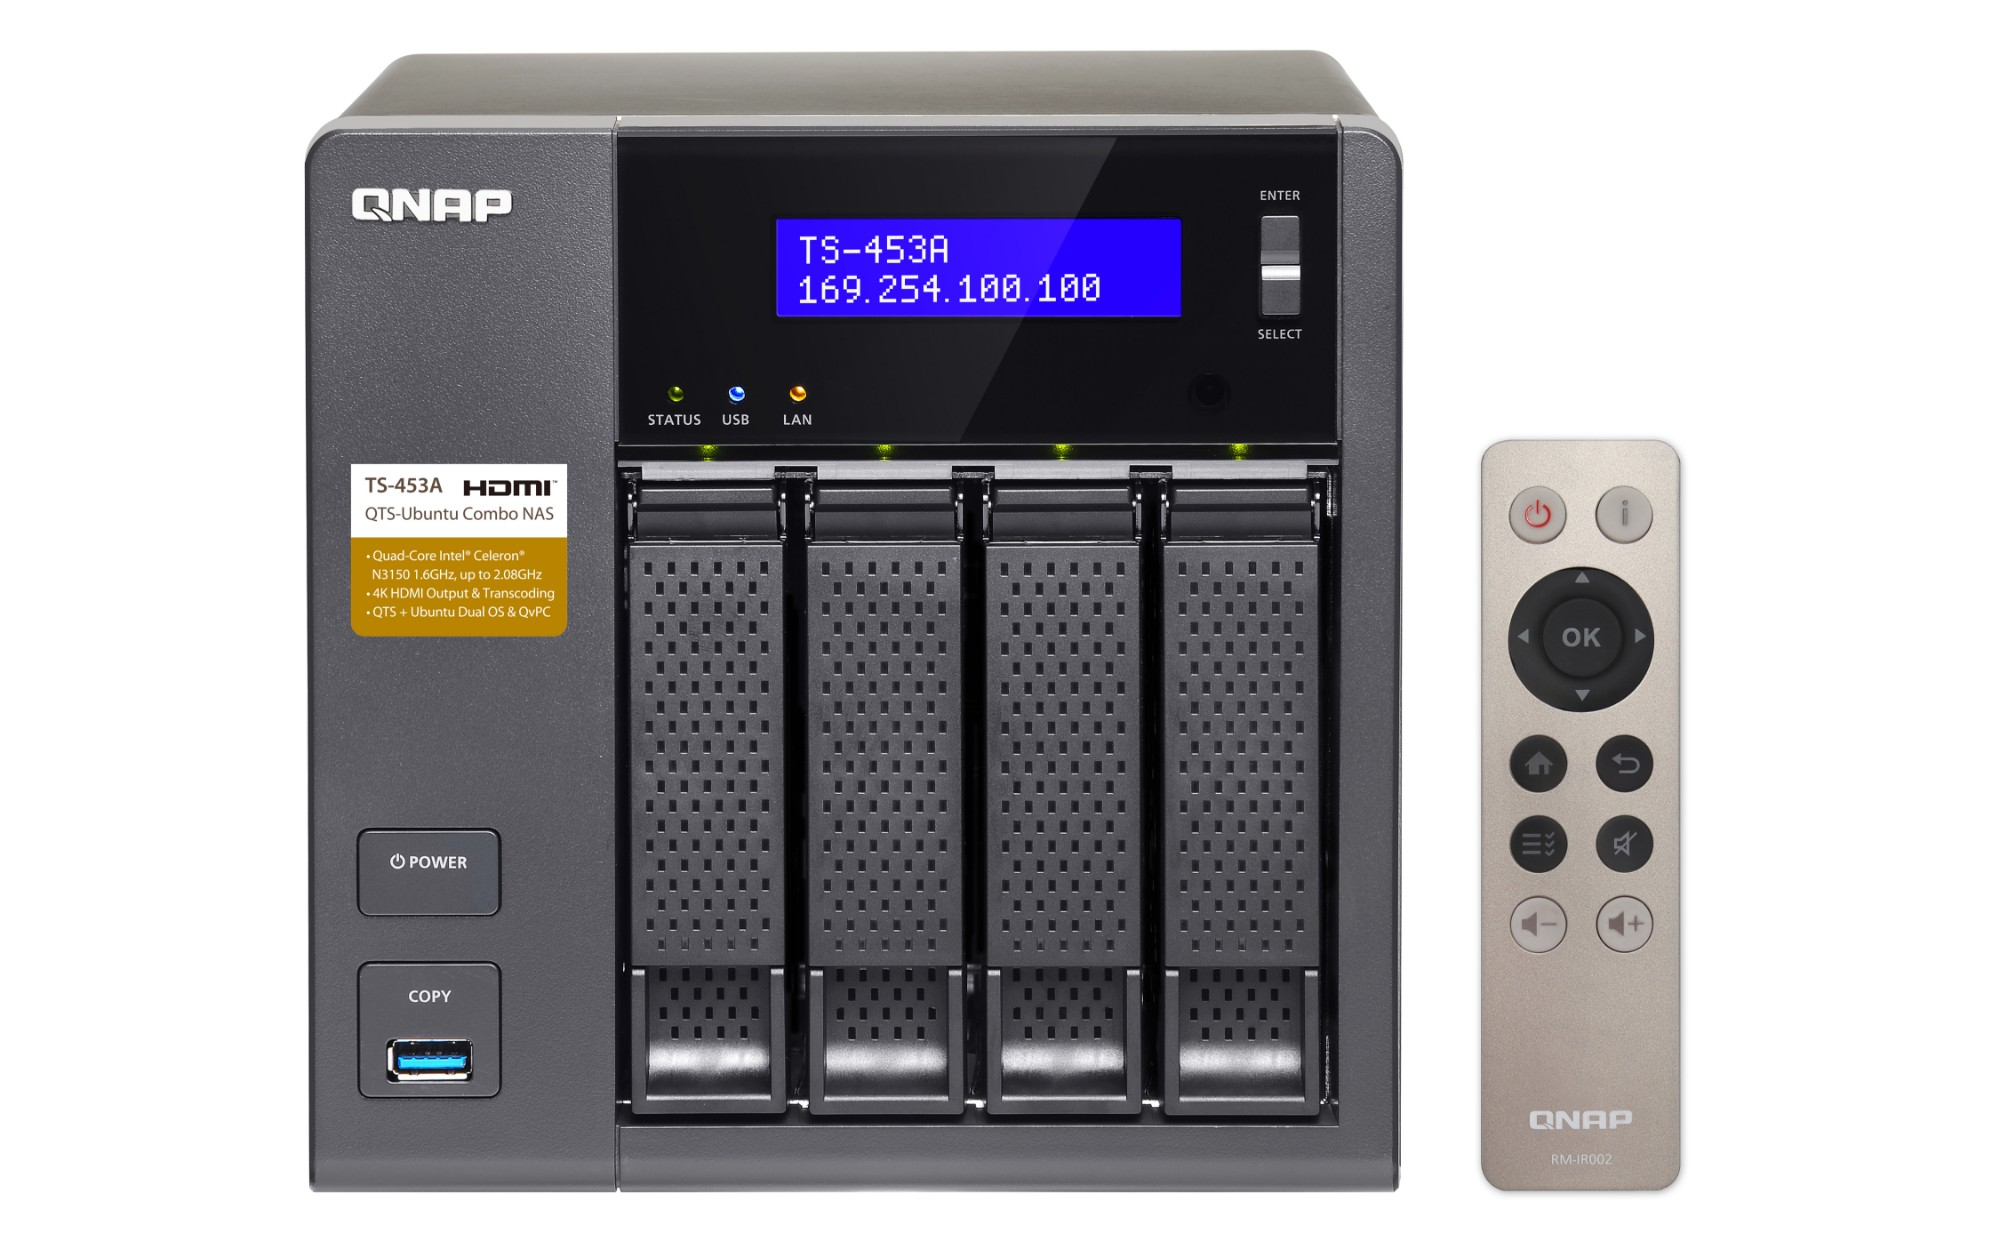 QNAP TS-453A-4G 16 TB 4 Bay Network Attached Storage Unit with 4 GB RAM